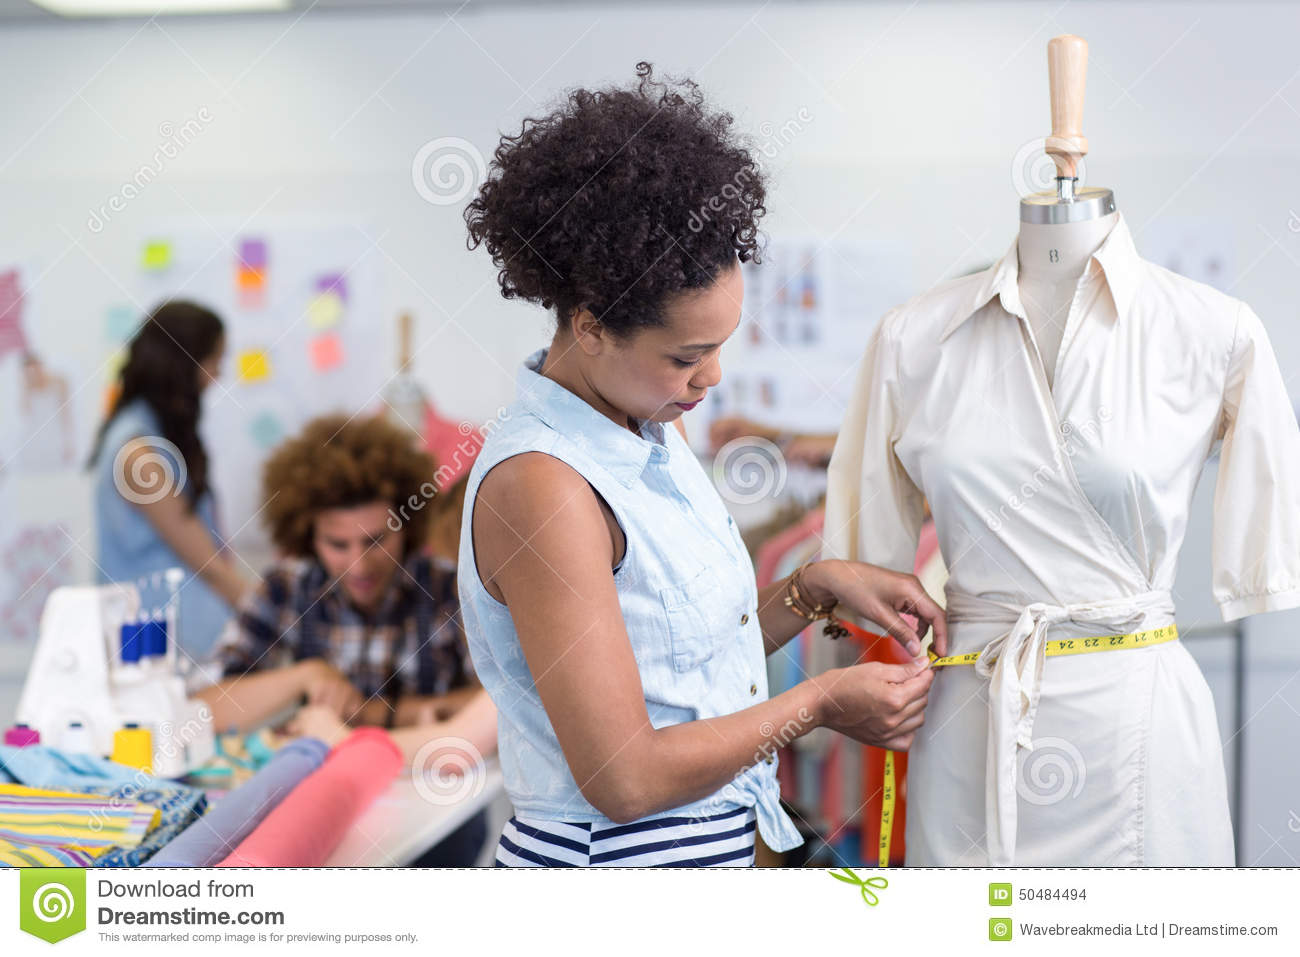 Female Fashion Designer At Work Stock Photo Image 50484494